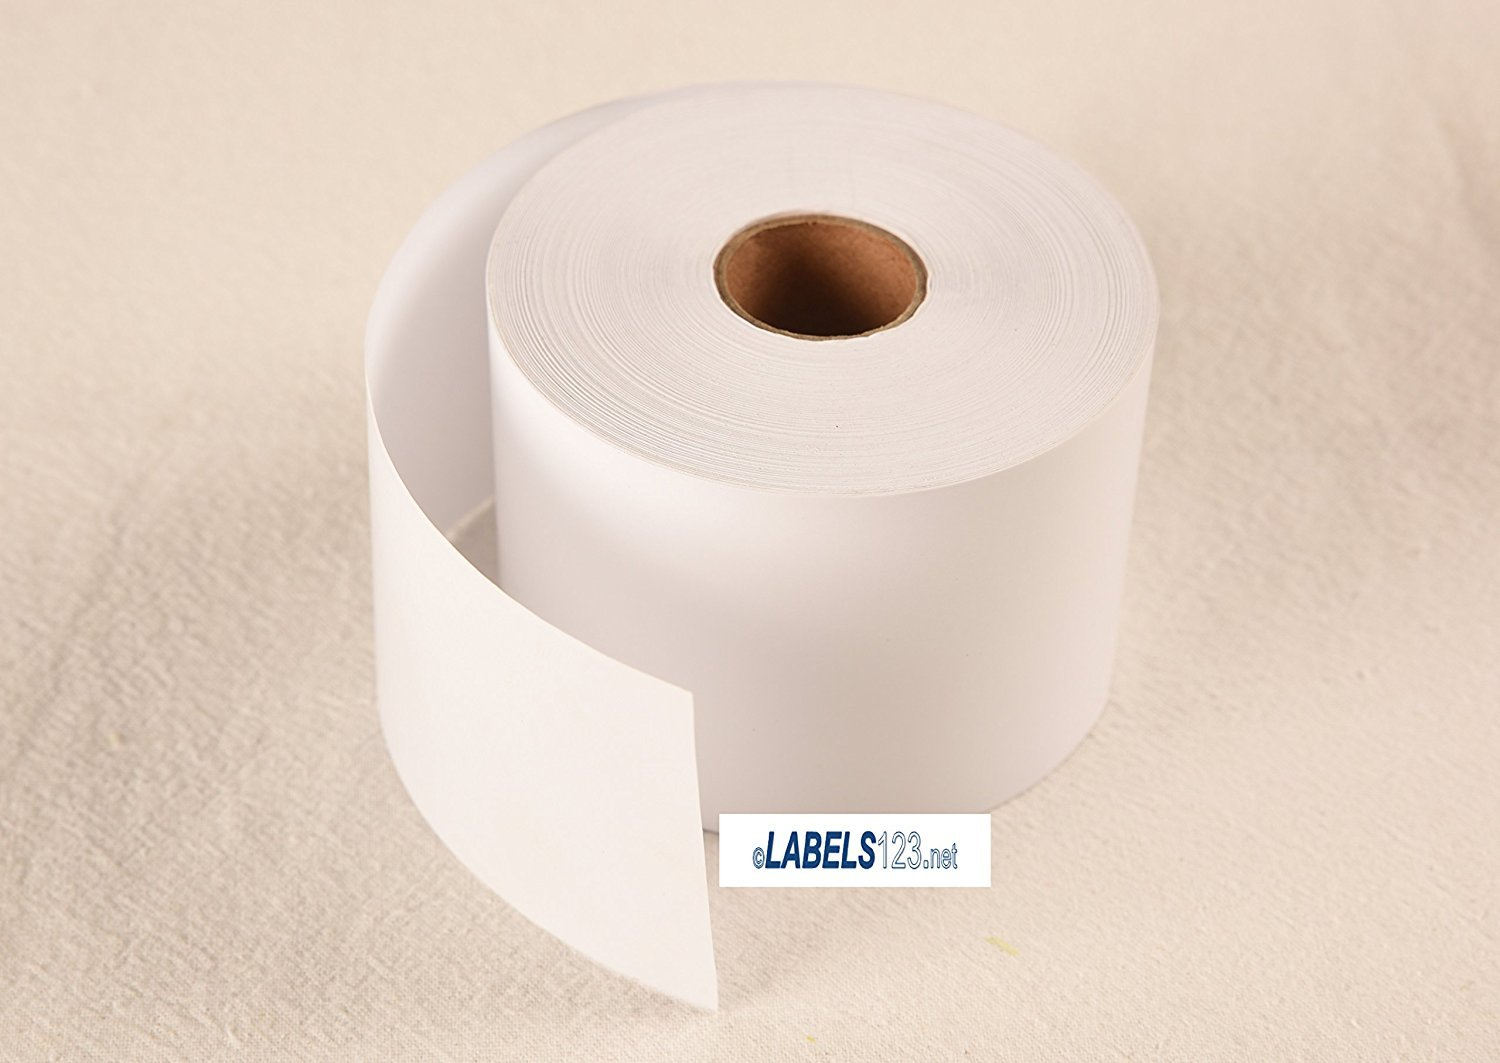 10 Rolls of Dymo Compatible eBay Labelree Folder Tag White Removable 30270 Labels Internet Postage Stamp Multipurpose 300ft long Roll